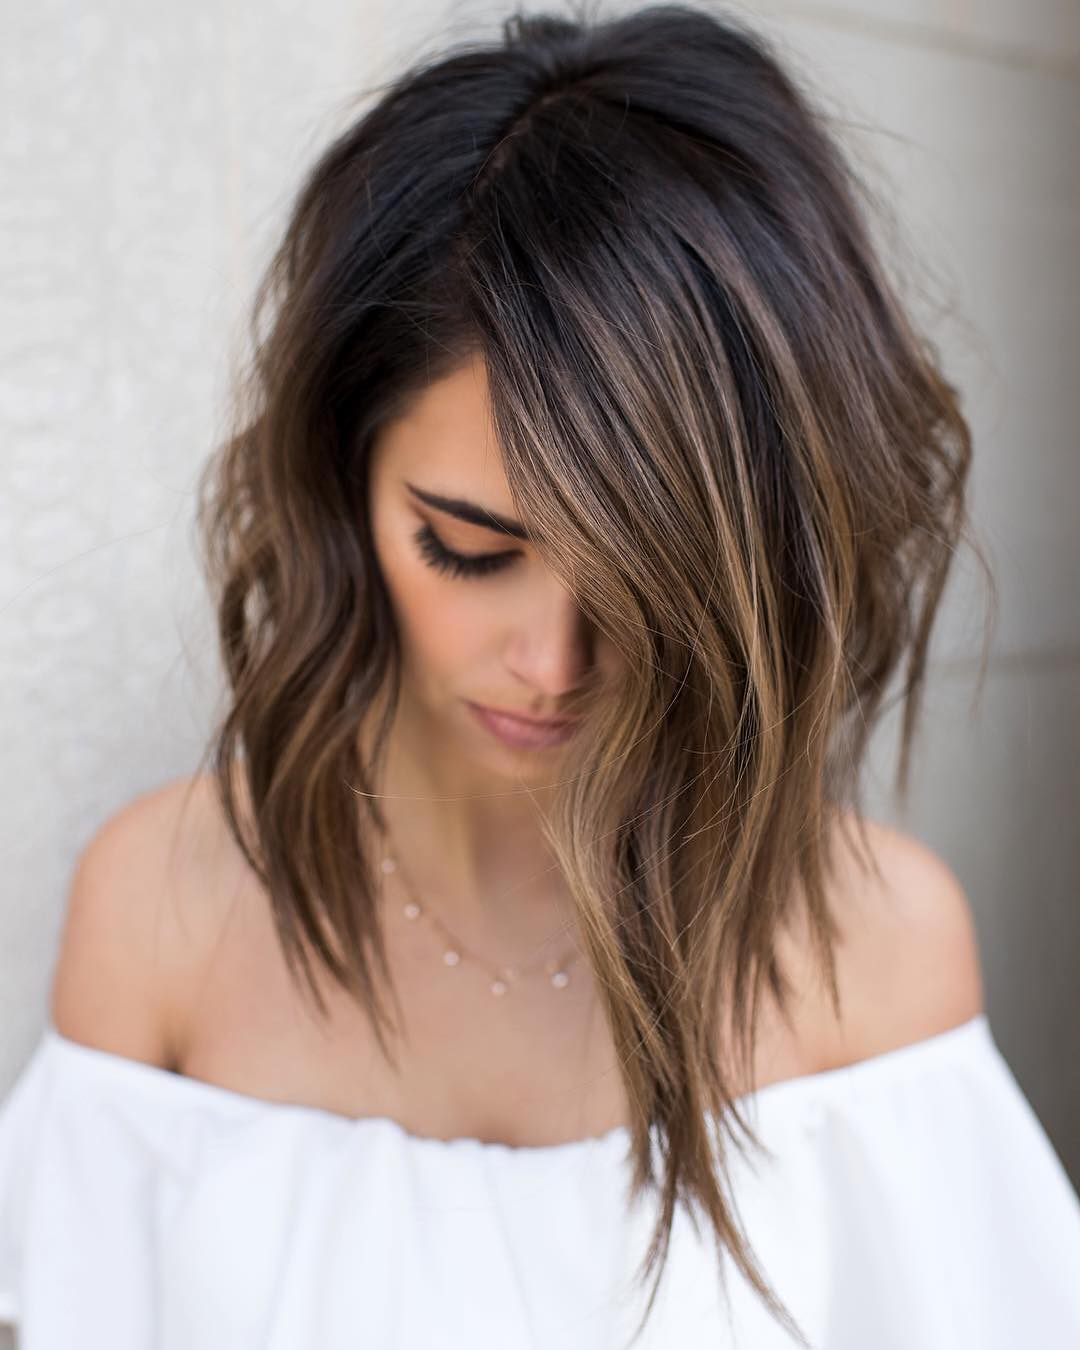 2018 Ombre Balayage Hairstyles For Chic Mid Length Hair ! 3